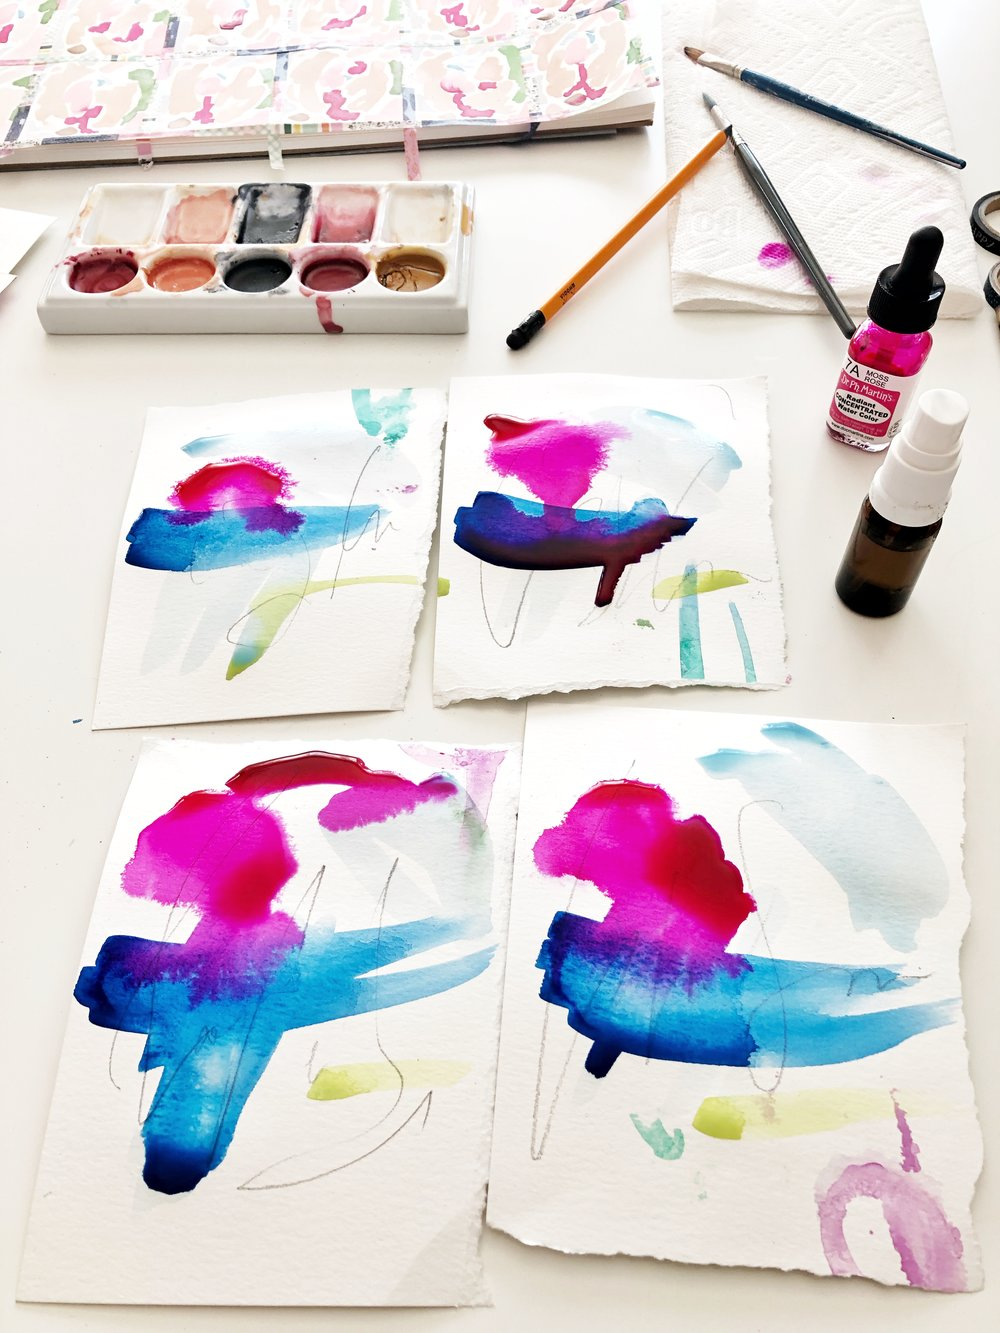 Intuitive, playful abstract watercolor paintings.